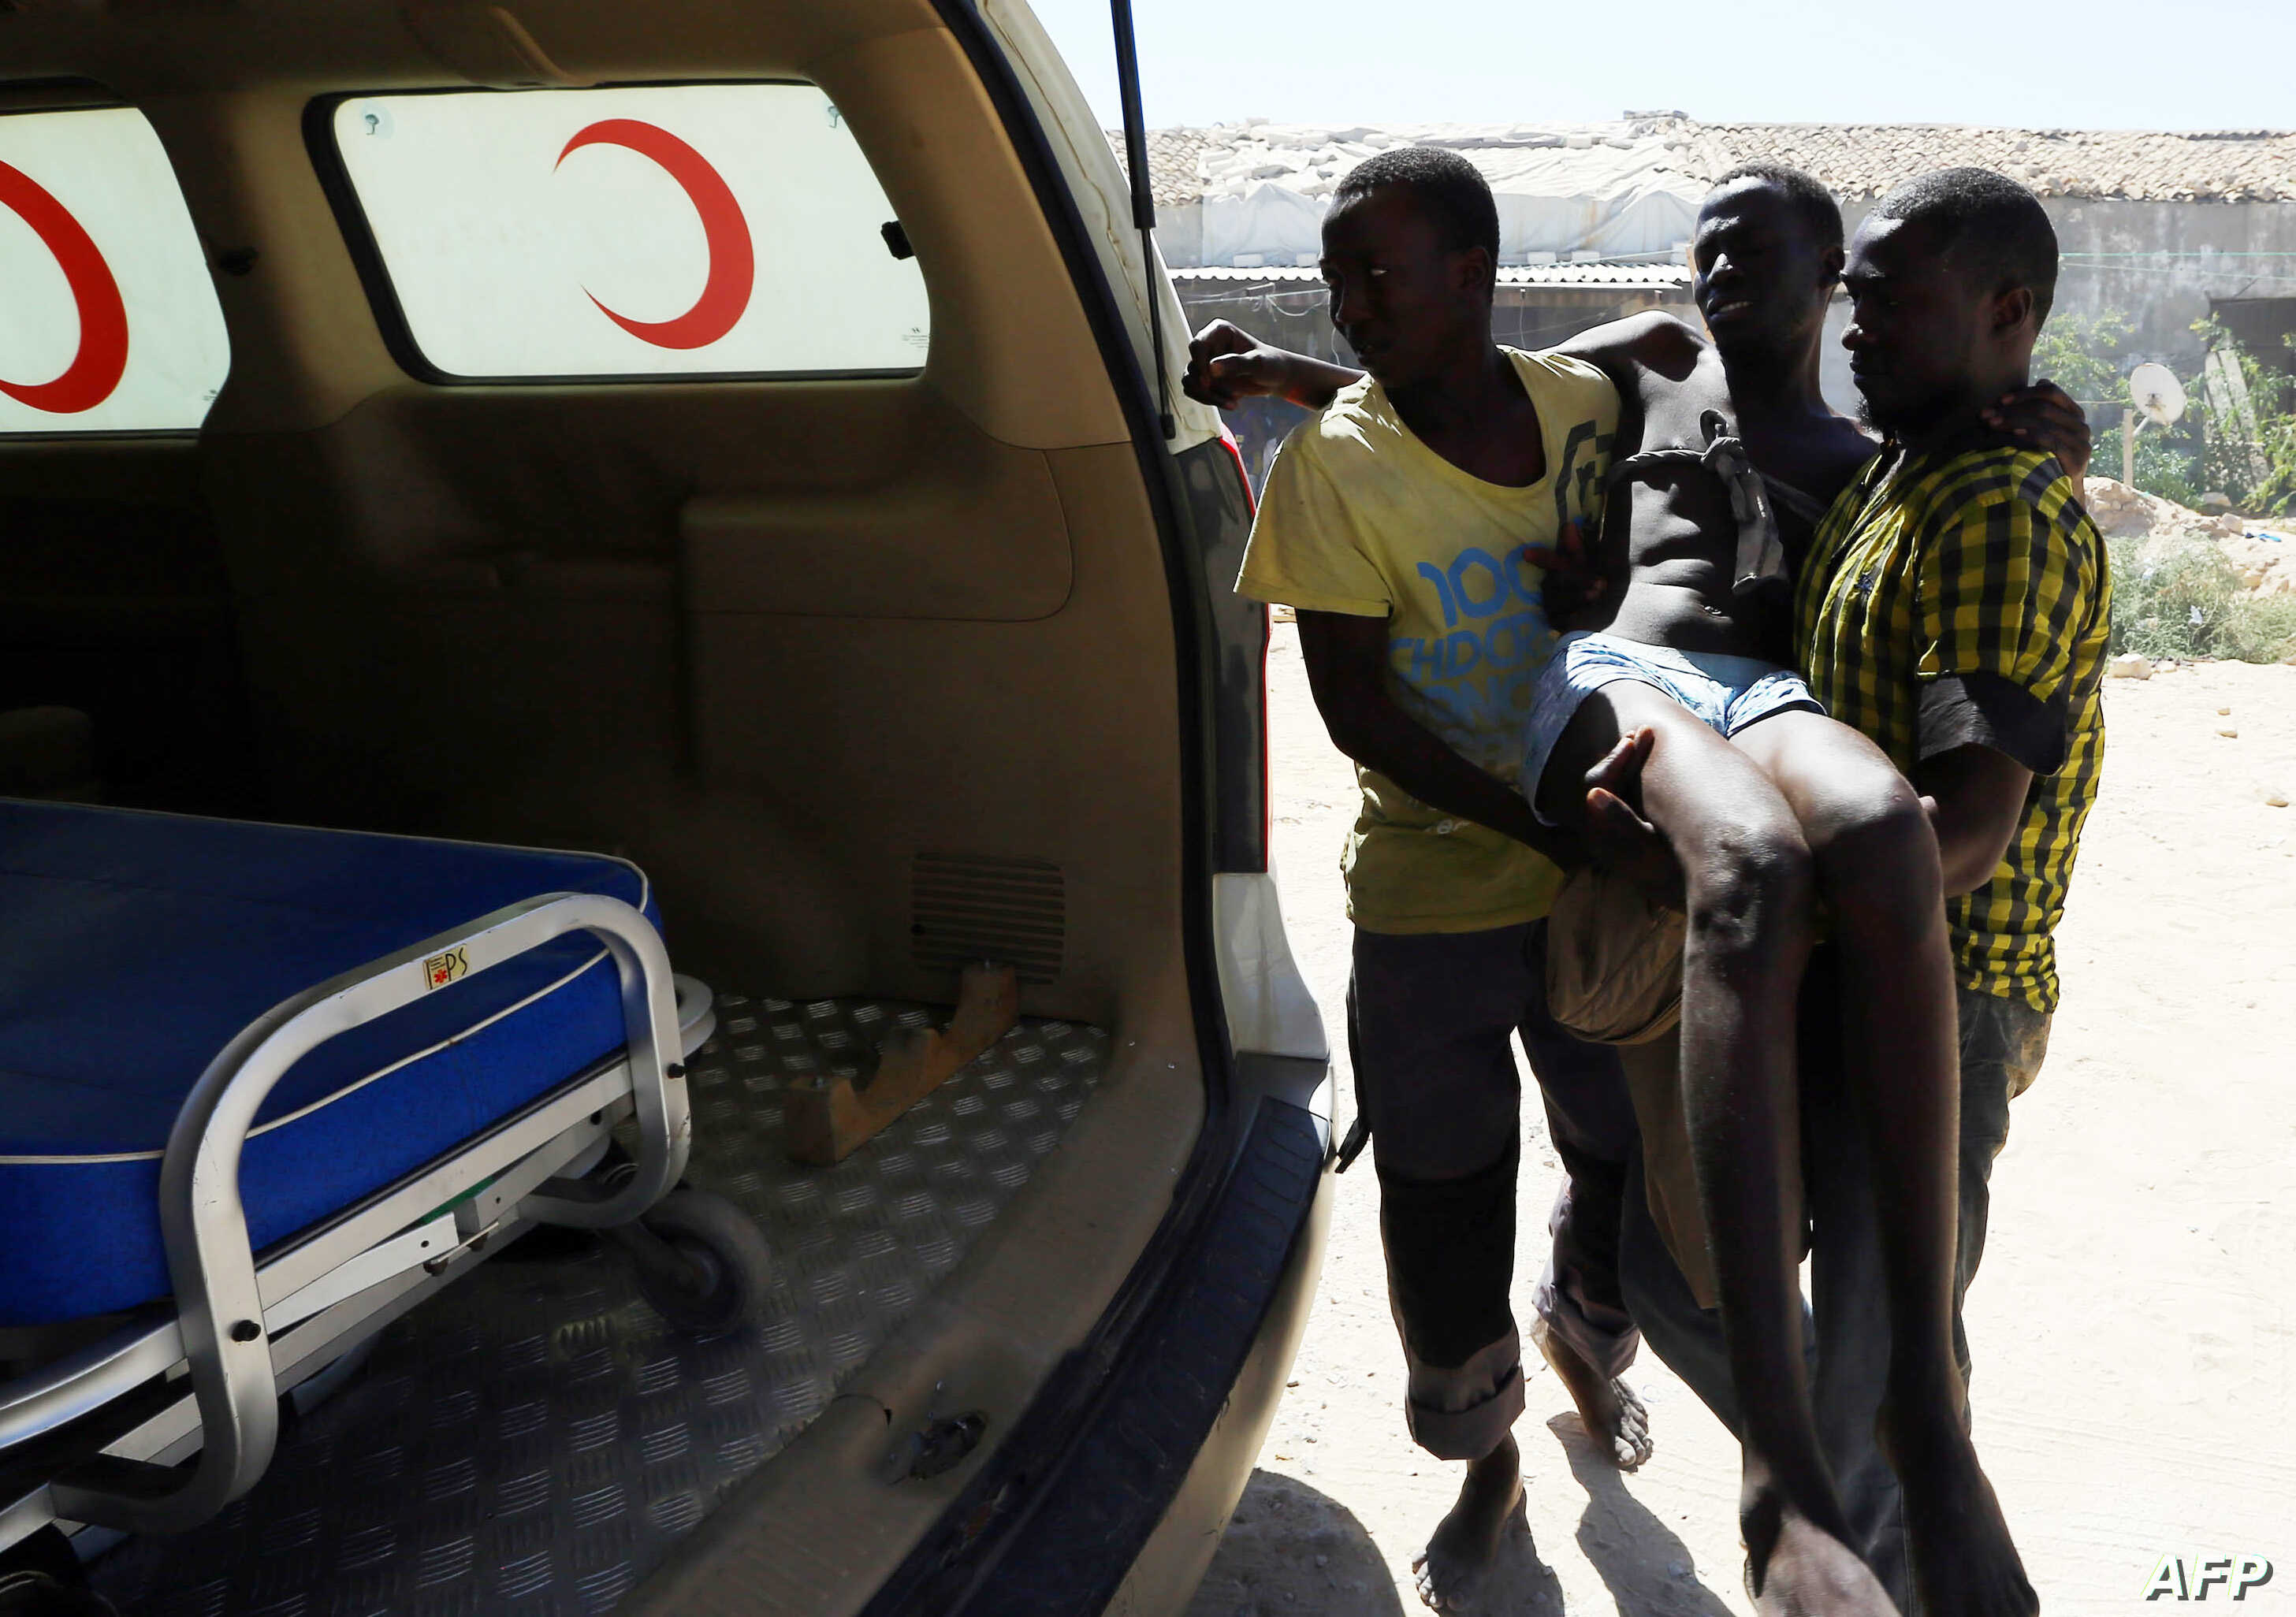 An illegal migrant is carried to an ambulance after he was rescued by the Libyan coast guard when the boat he was on sank off the coastal town of Garabulli, 60 kilometers east of Tripoli, Sept. 15, 2014.